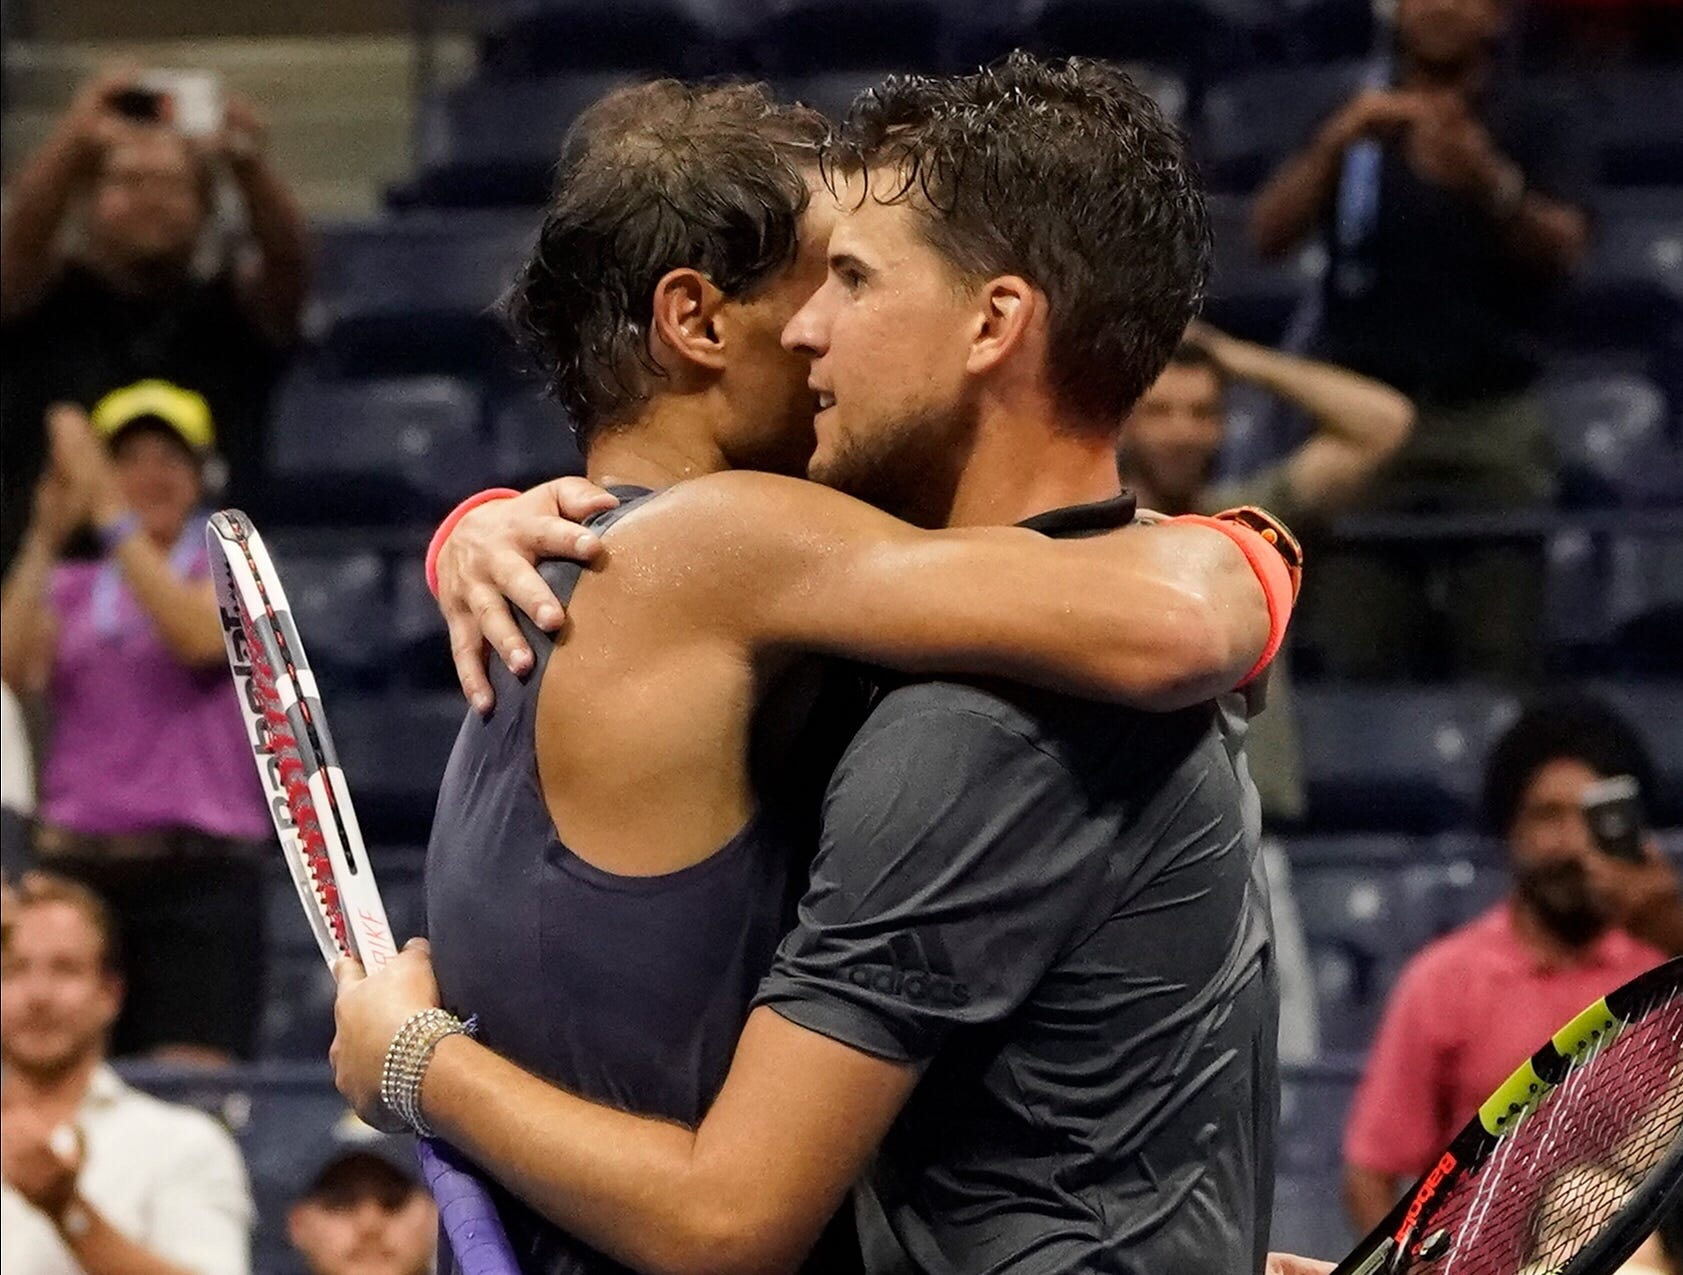 Rafael Nadal and Dominic Thiem embrace after their quarterfinal match.